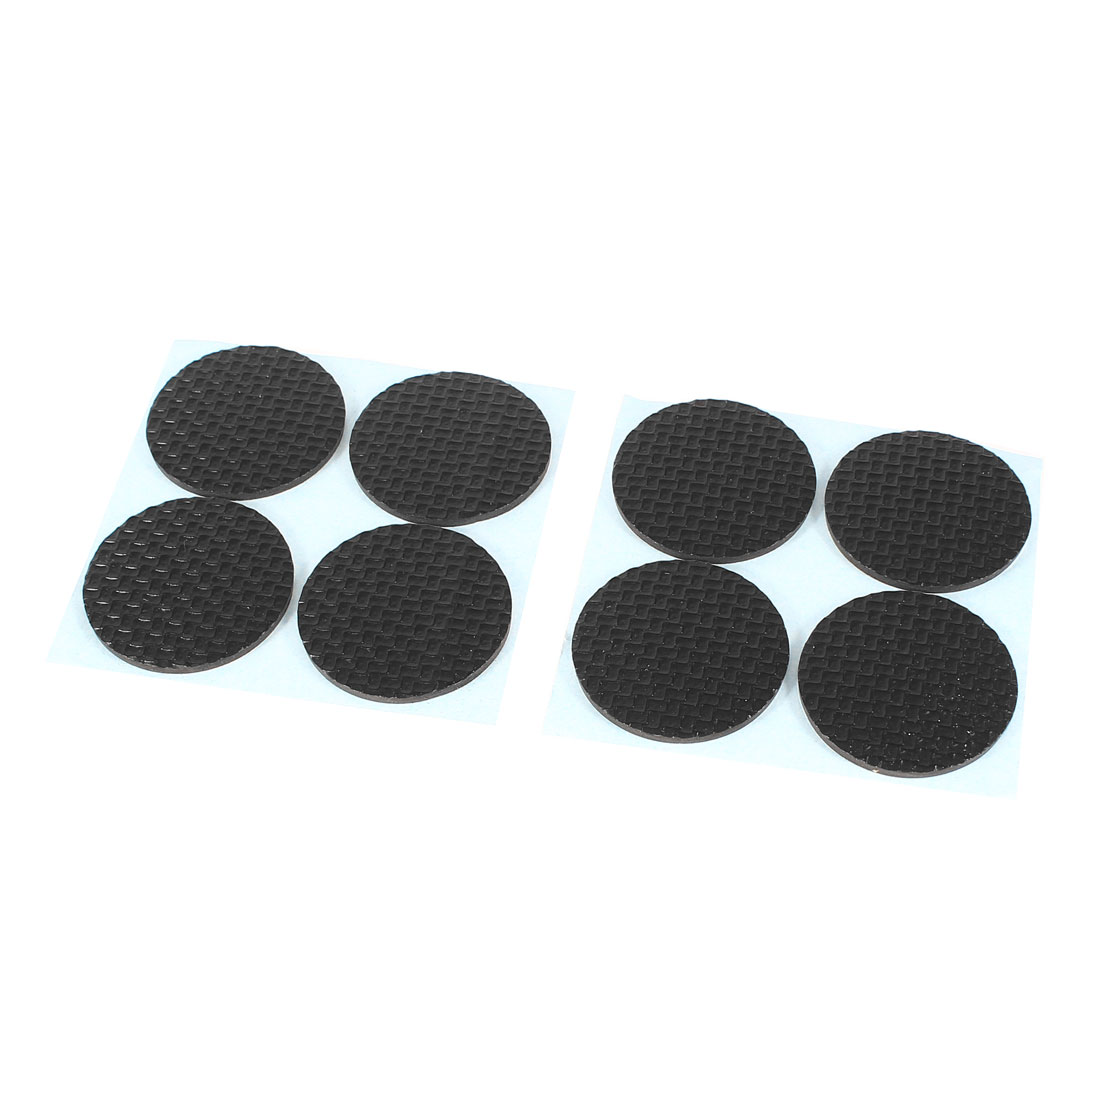 8 Pcs Tables Chairs Furniture Protection Round Pad Black for Home